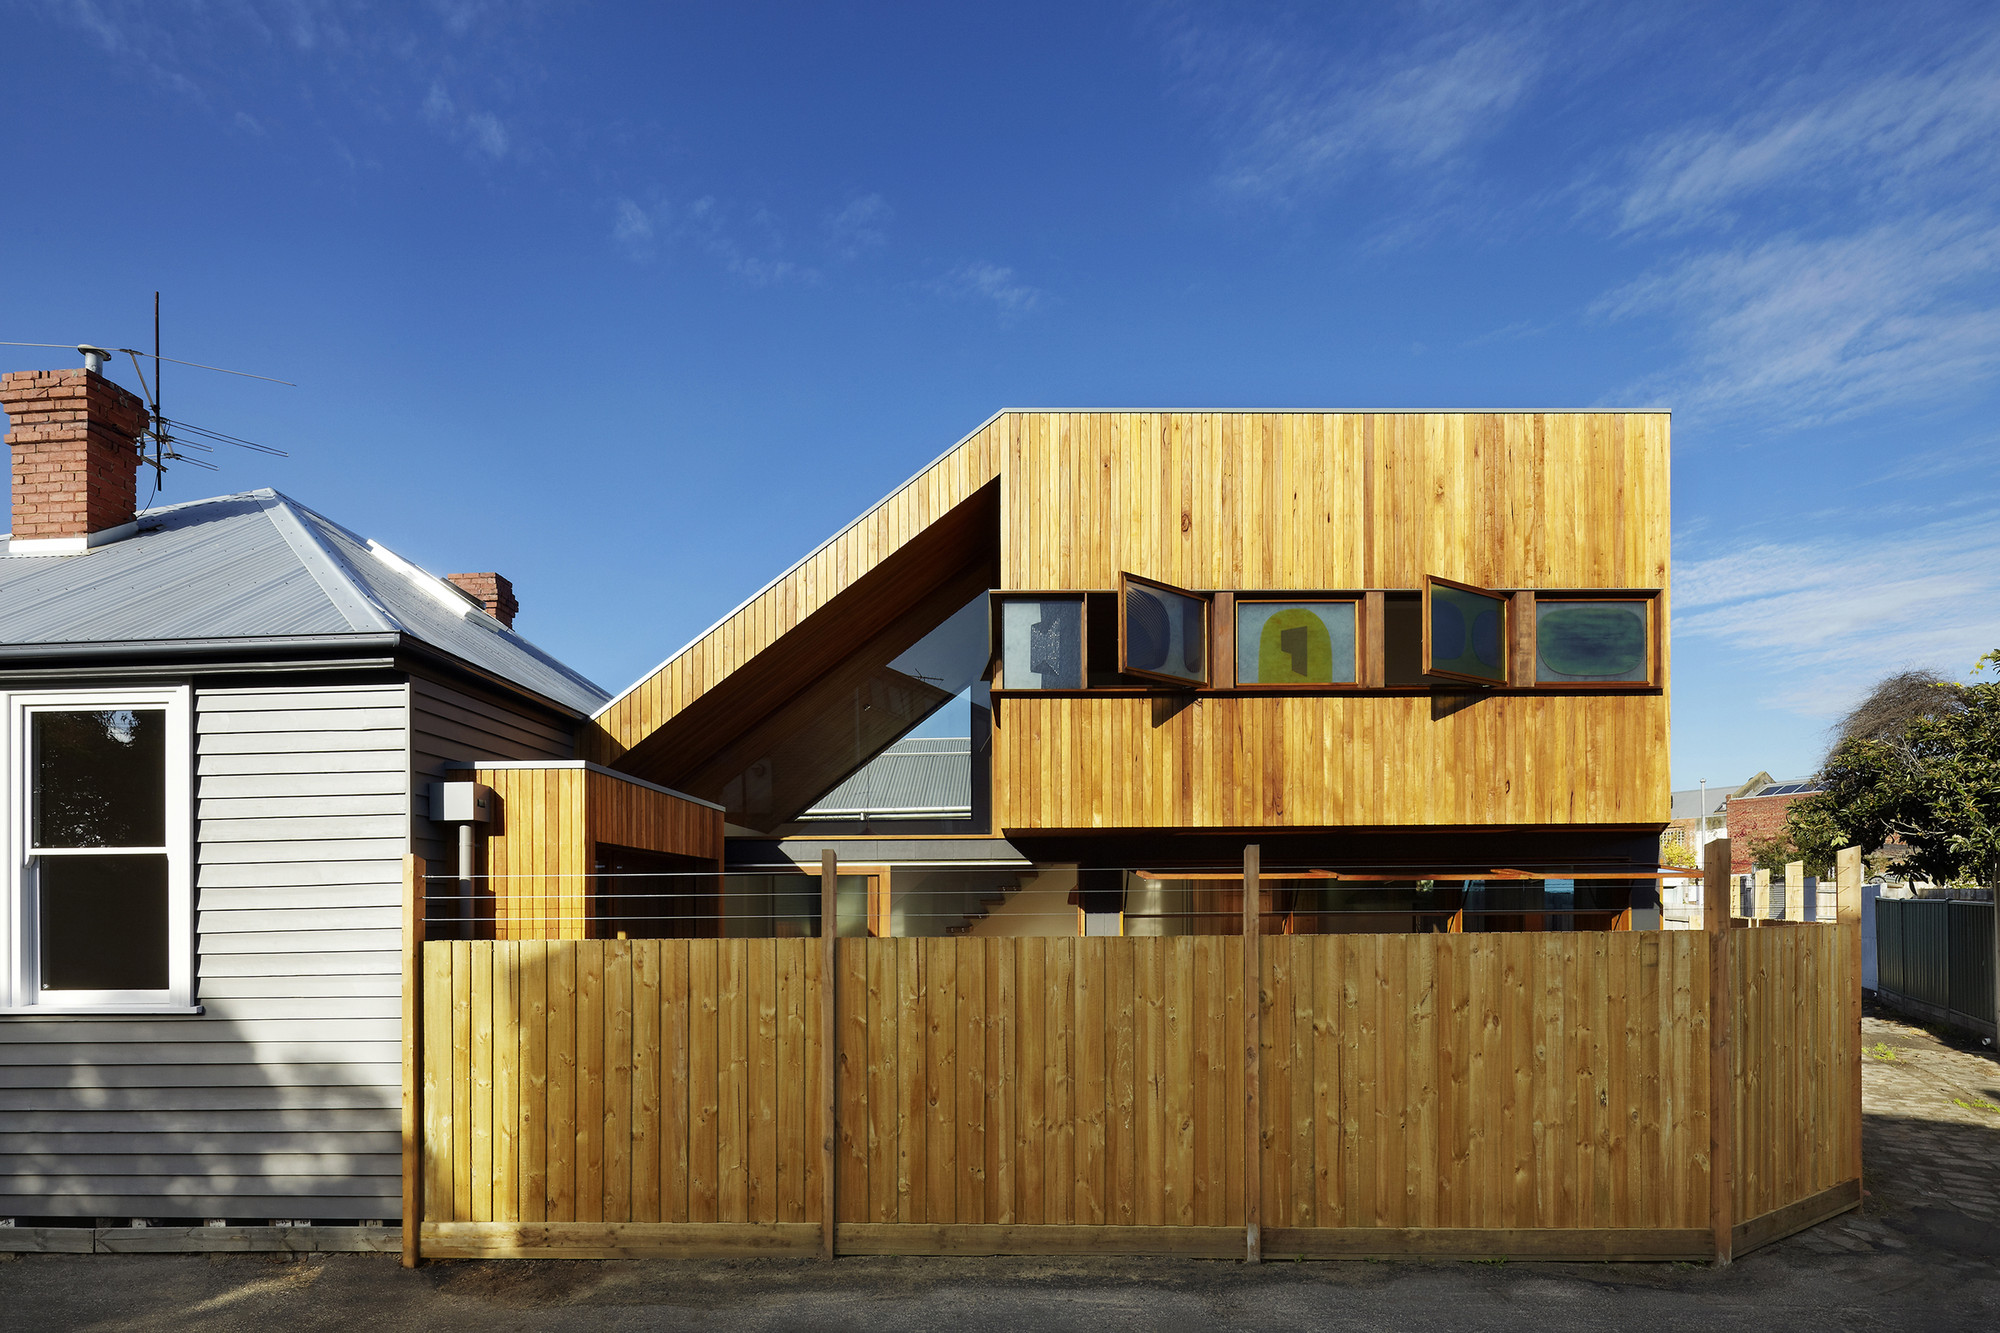 Casa Fenwick Street / Julie Firkin Architects, © Christine Francis